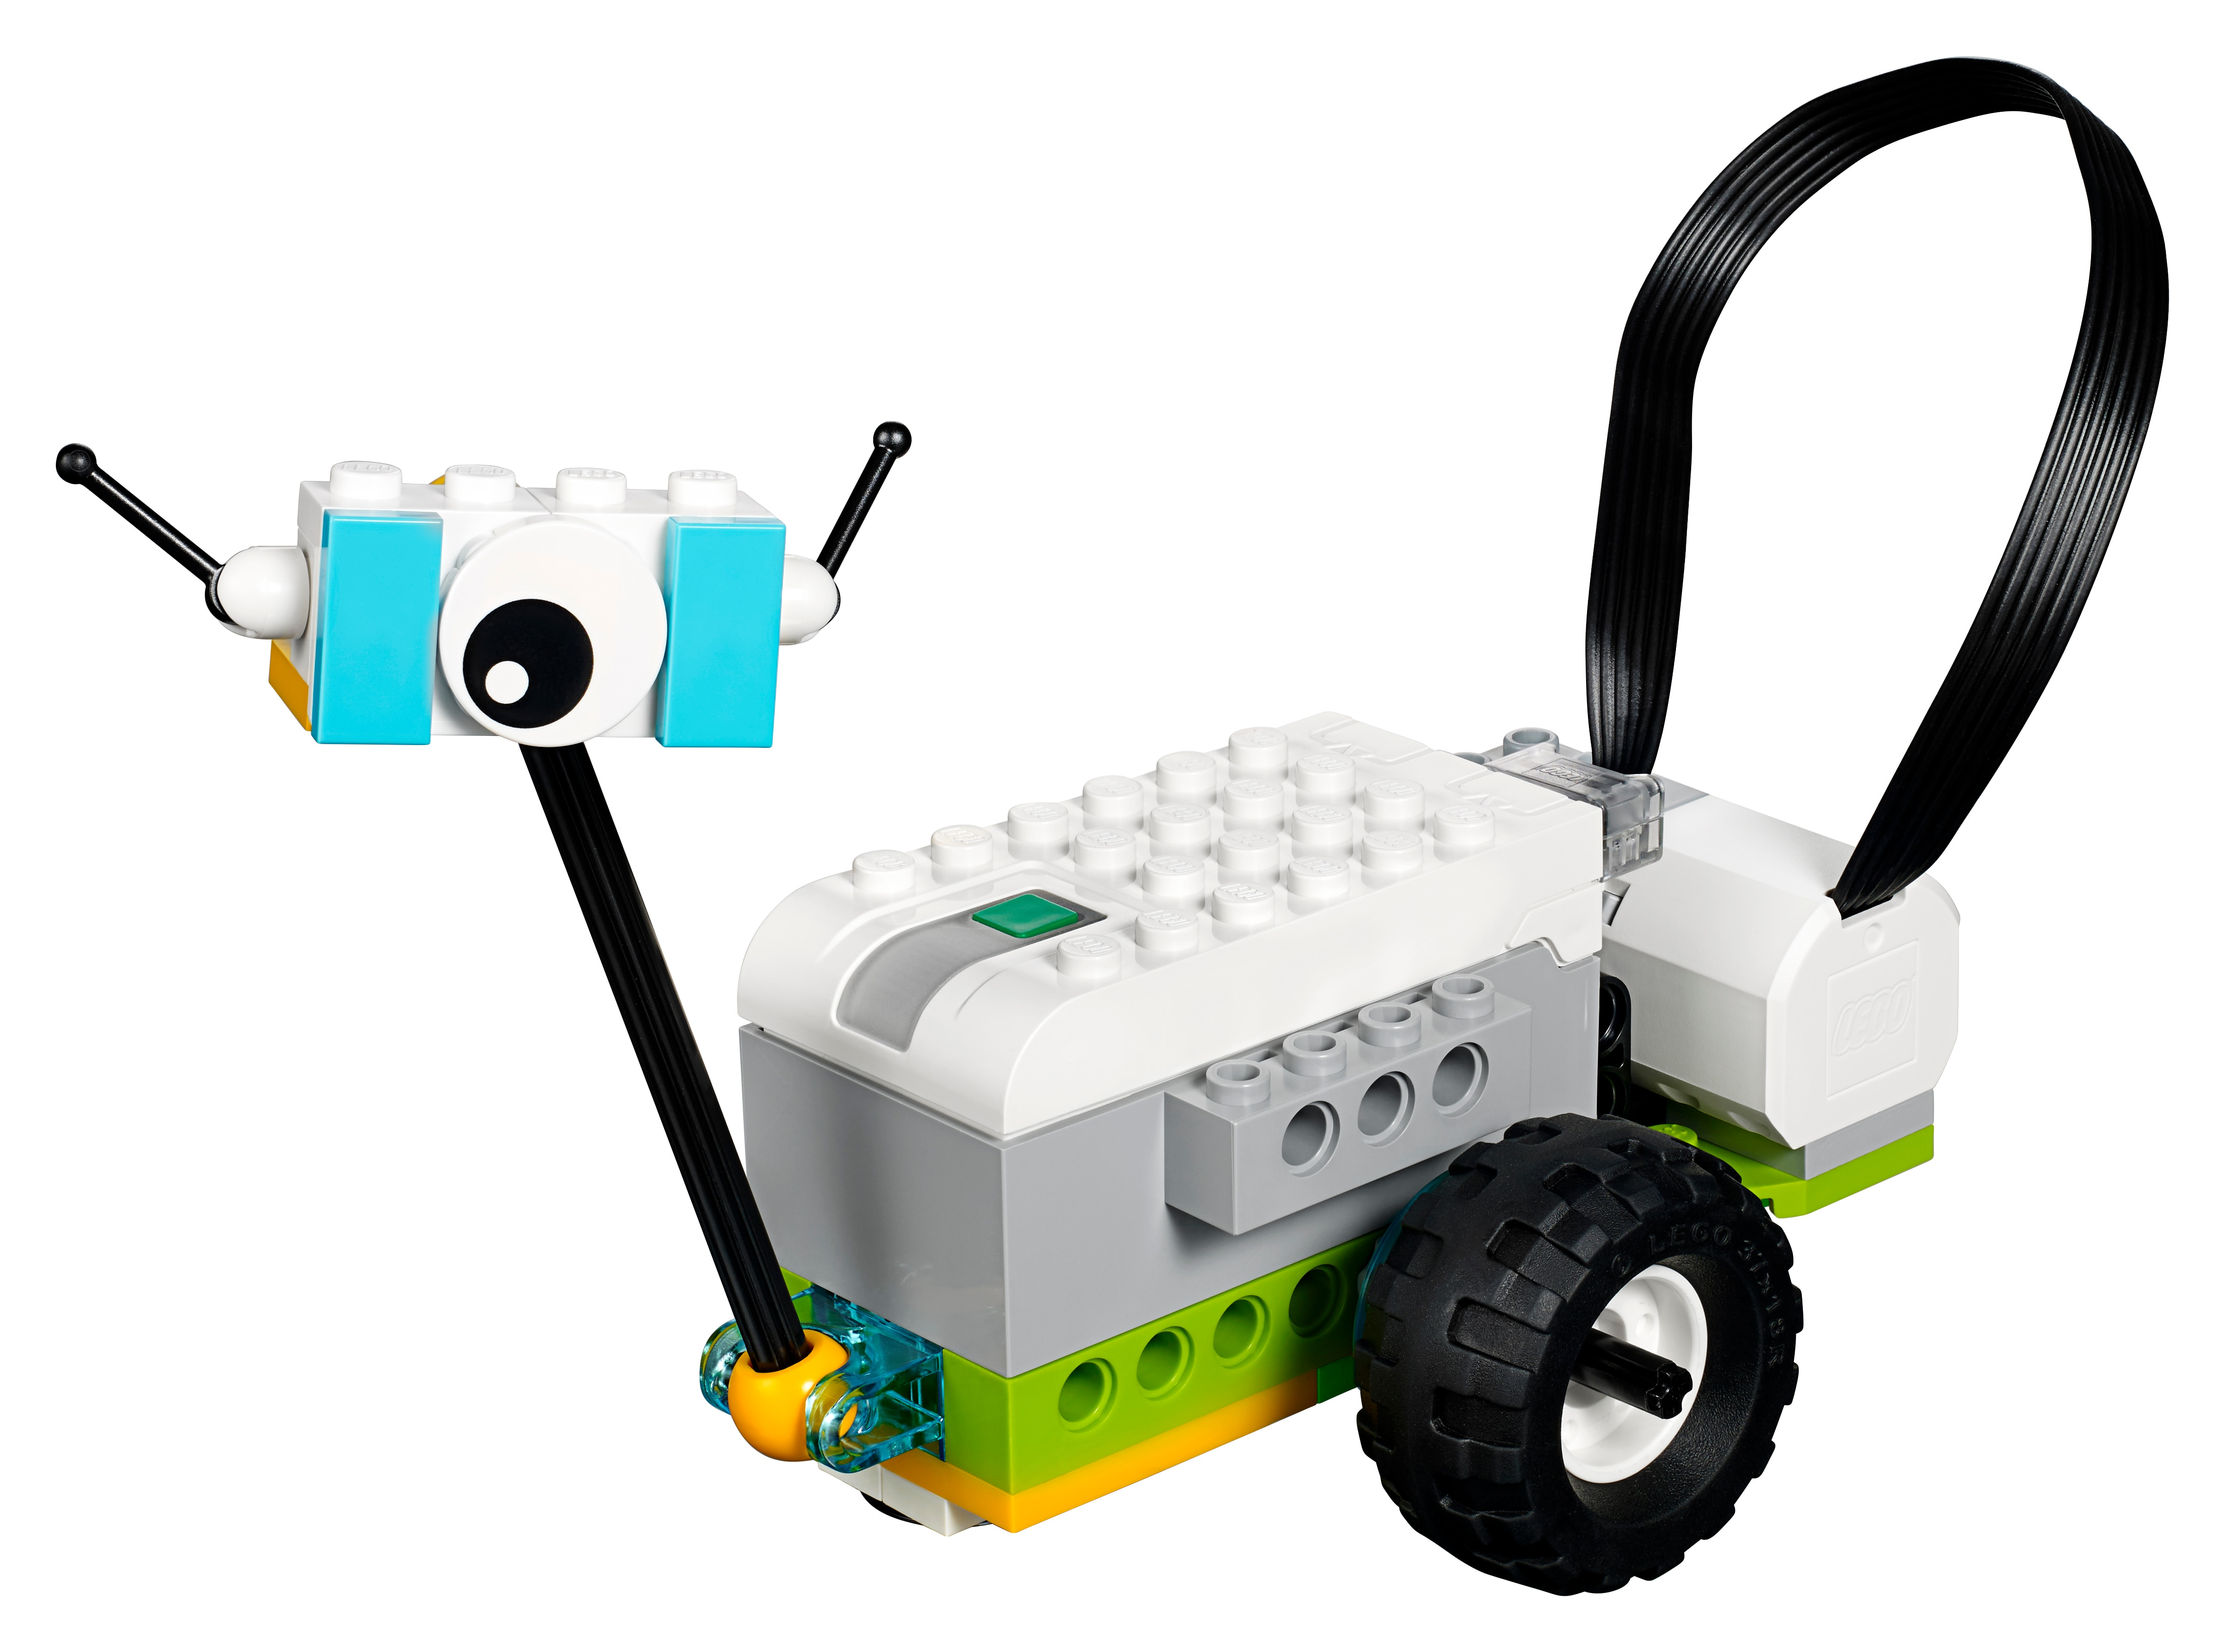 Getting Started Project, part A: Milo, the Science Rover